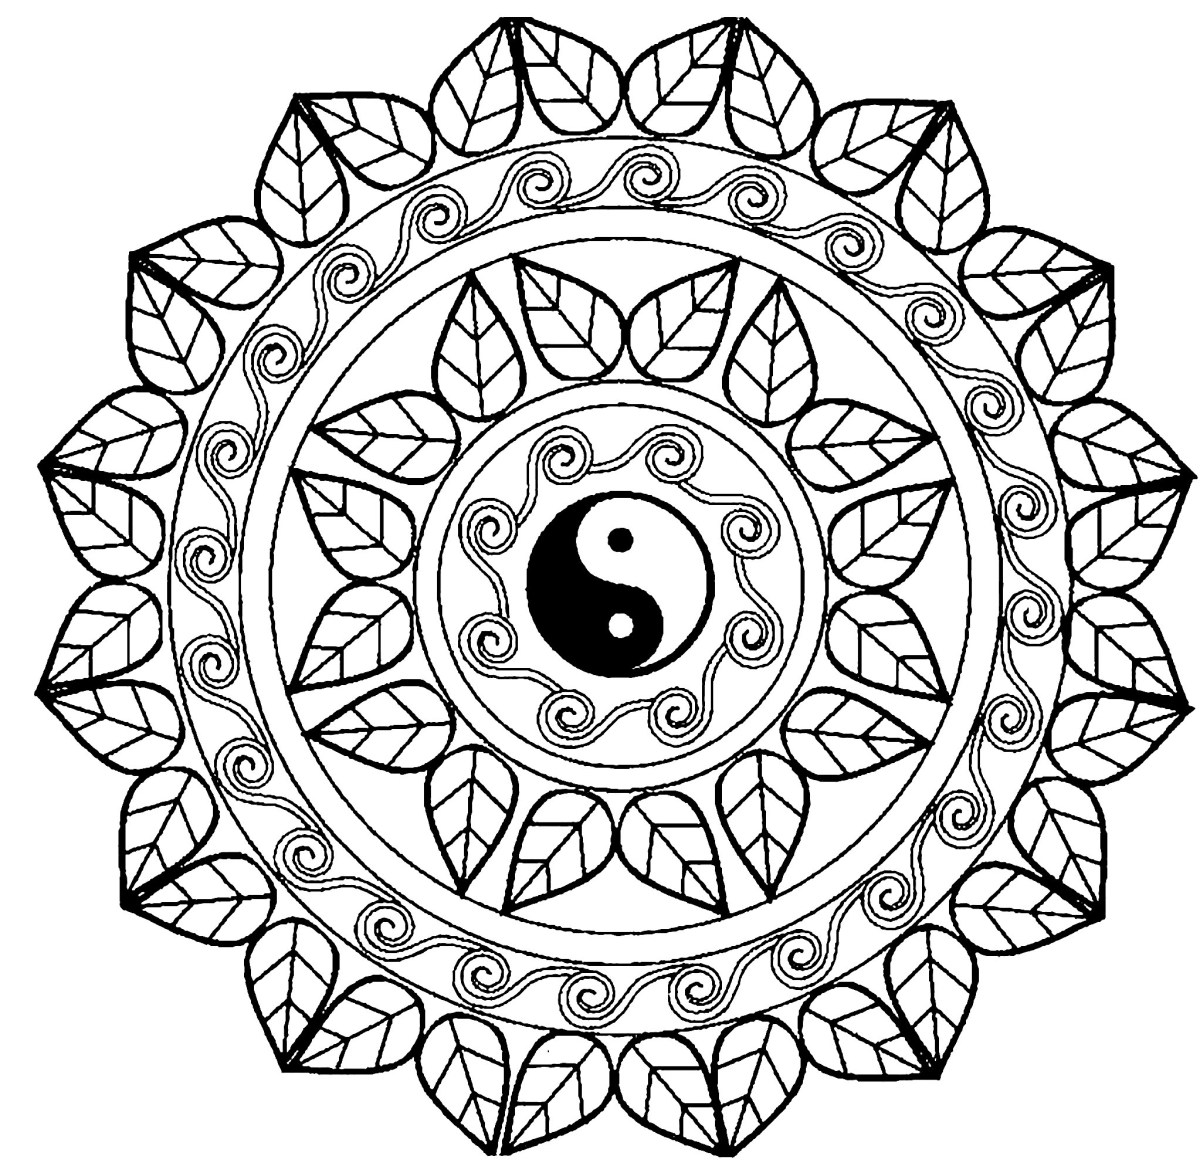 Cool Yin Yang Coloring Pages